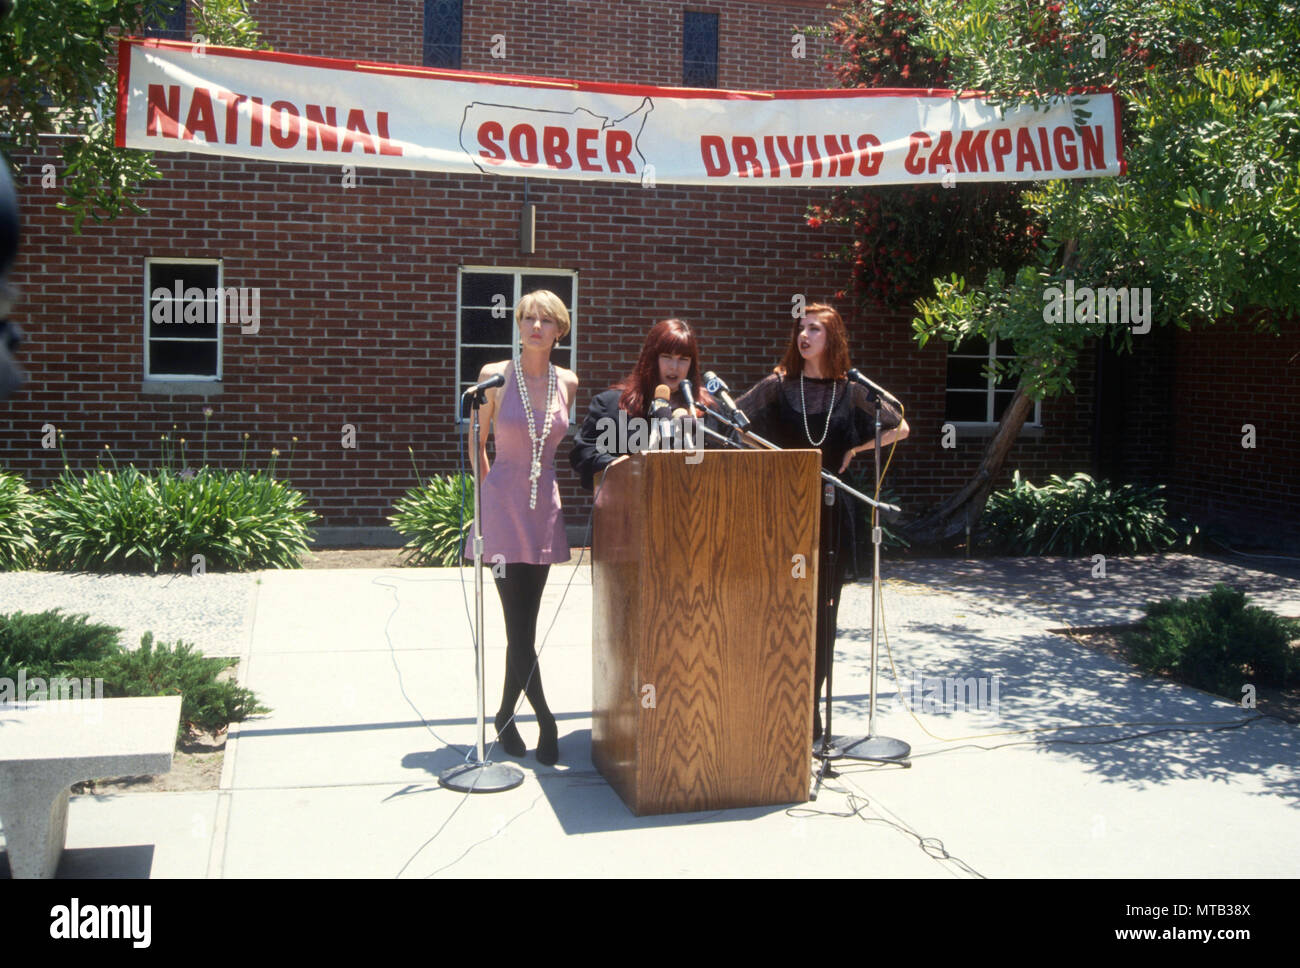 LOS ANGELES, CA - JUNE 3: (L-R) Singers Chynna Phillips. Carnie Wilson and Wendy Wilson of Music group Wilson Phillips attend event for National Sober Driving Campaign on June 3, 1991 in Los Angeles, California. Photo by Barry King/Alamy Stock Photo - Stock Image